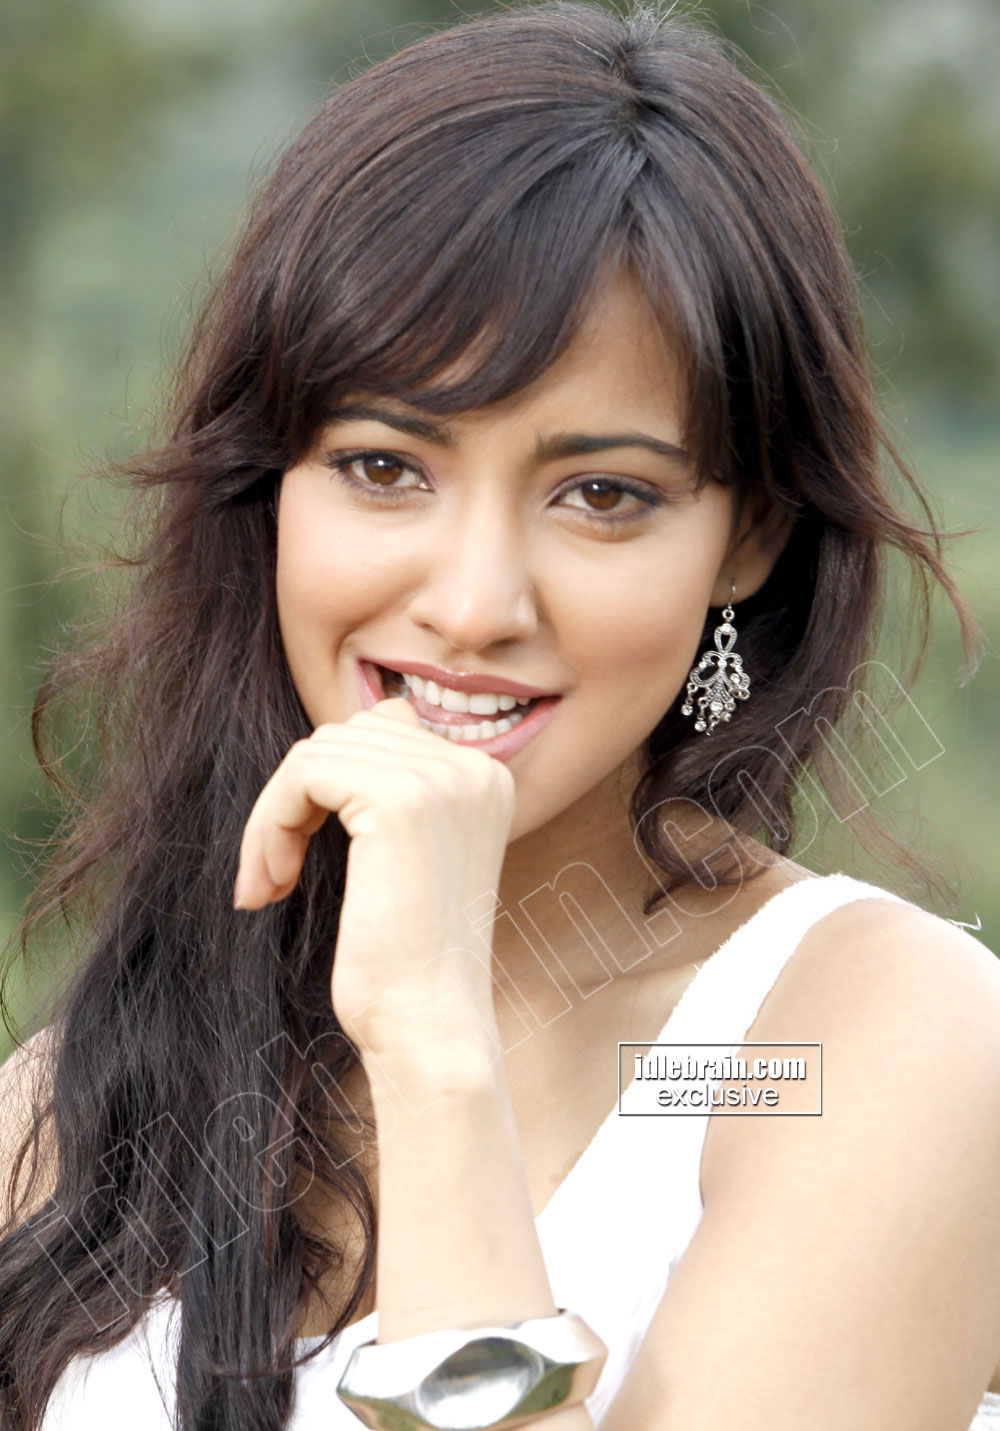 Neha Sharma Hot Pic1 - Neha Sharma Hot Pics